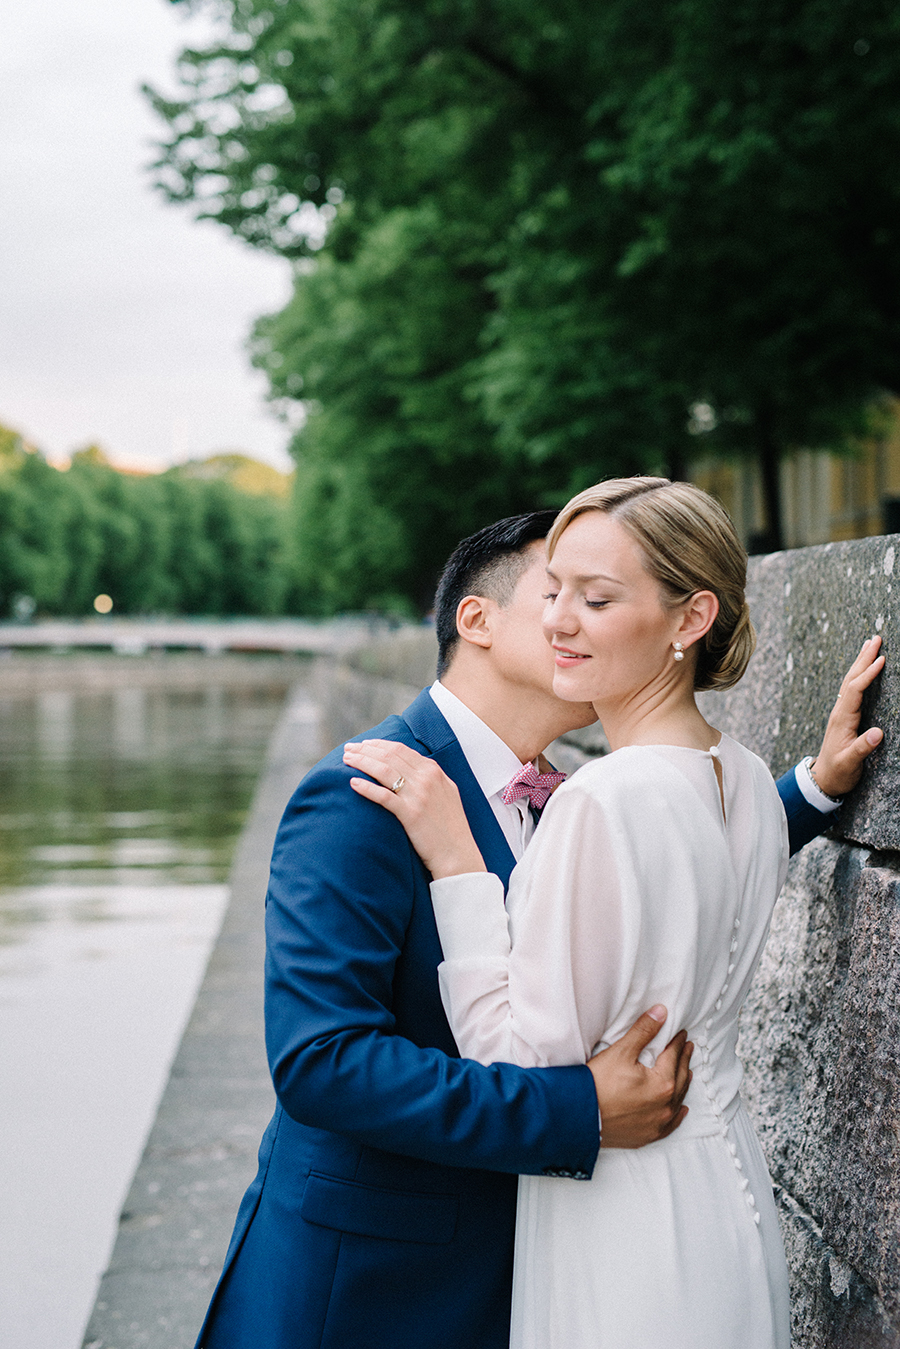 Justina and Lee, Chinese-Lithuanian wedding in Turku, Restaurant Tårget (121).jpg